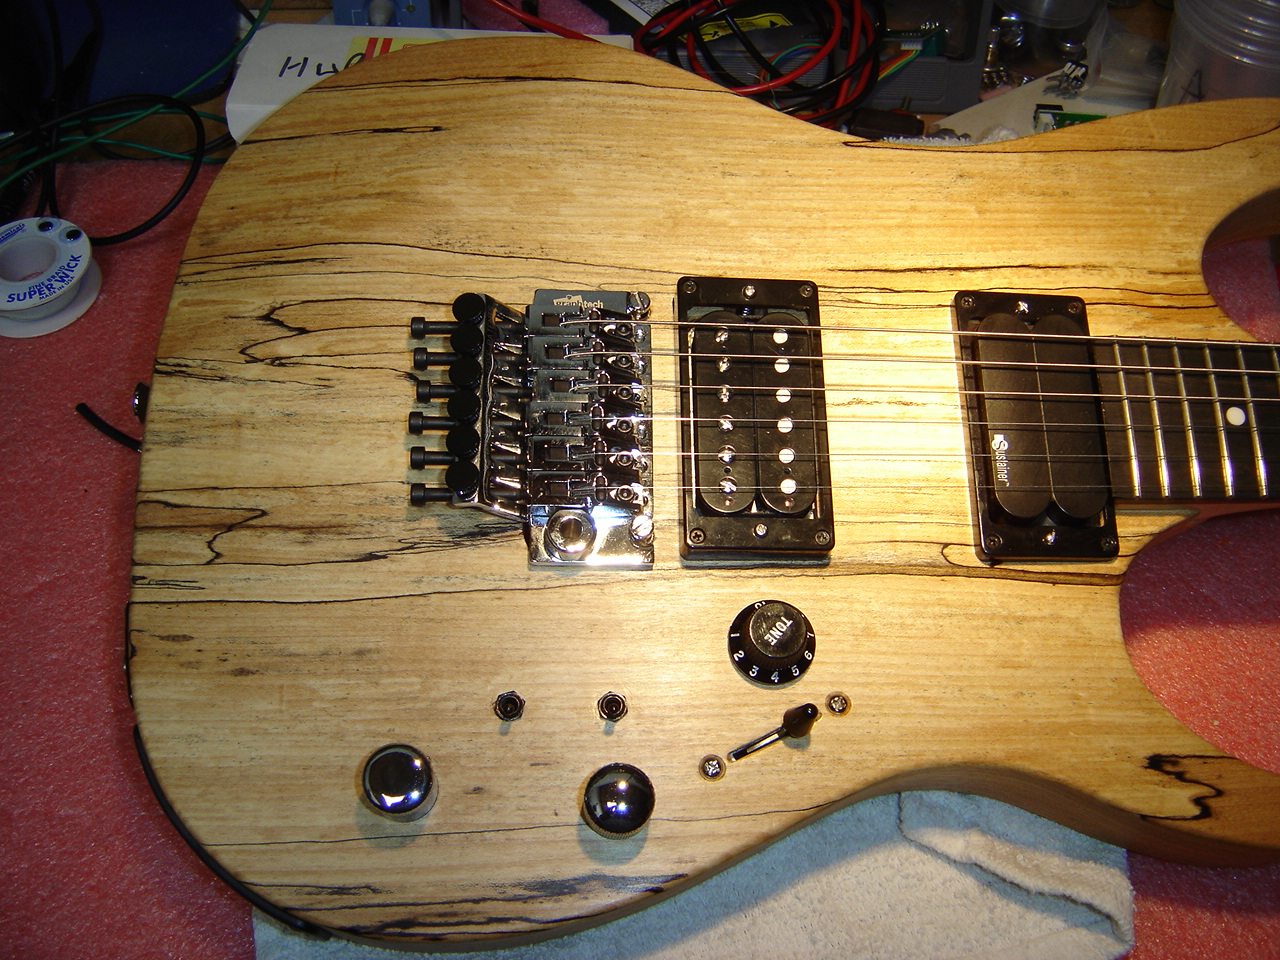 Tta002 Thermal Relief Design Guitar Wiring Actual The Luthier Had Done A Beautiful Job Of Routing Drilling And Modifying Body To Fit All Electronics Controls Into